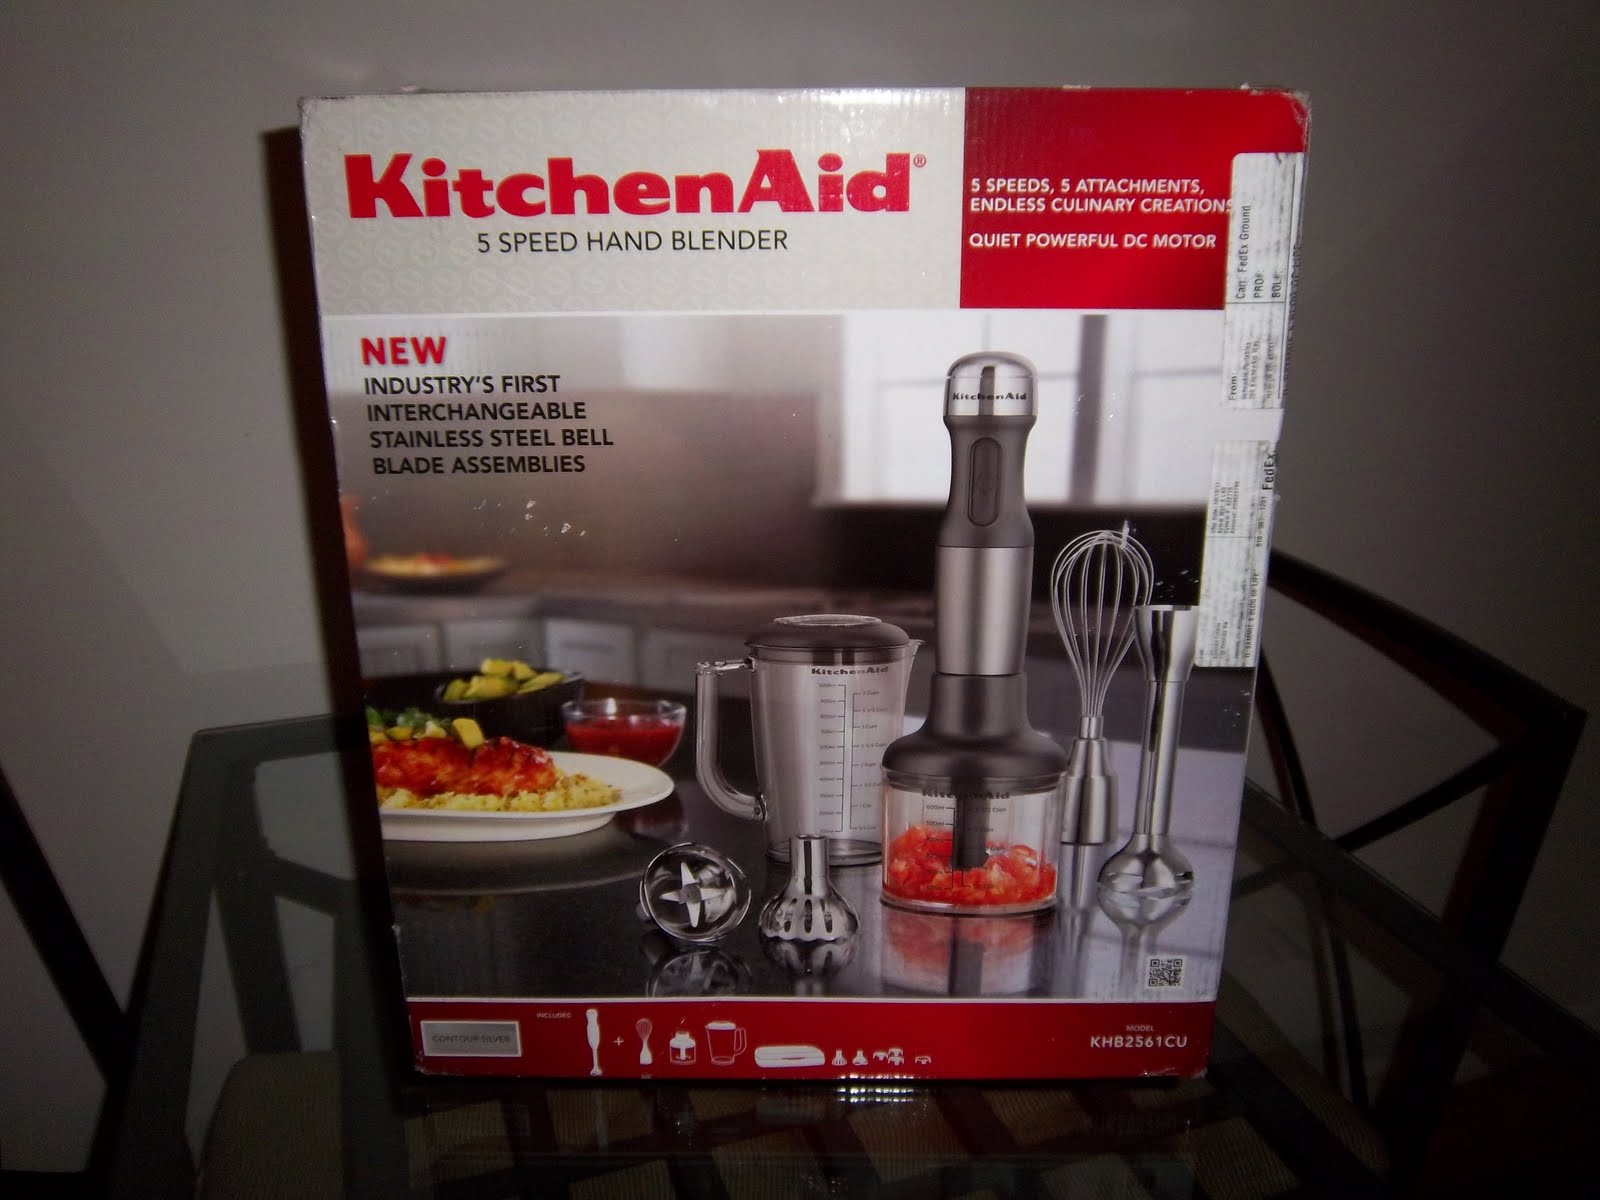 Kitchenaid Architect Series Hand Blender kitchenaid 5 speed hand blender